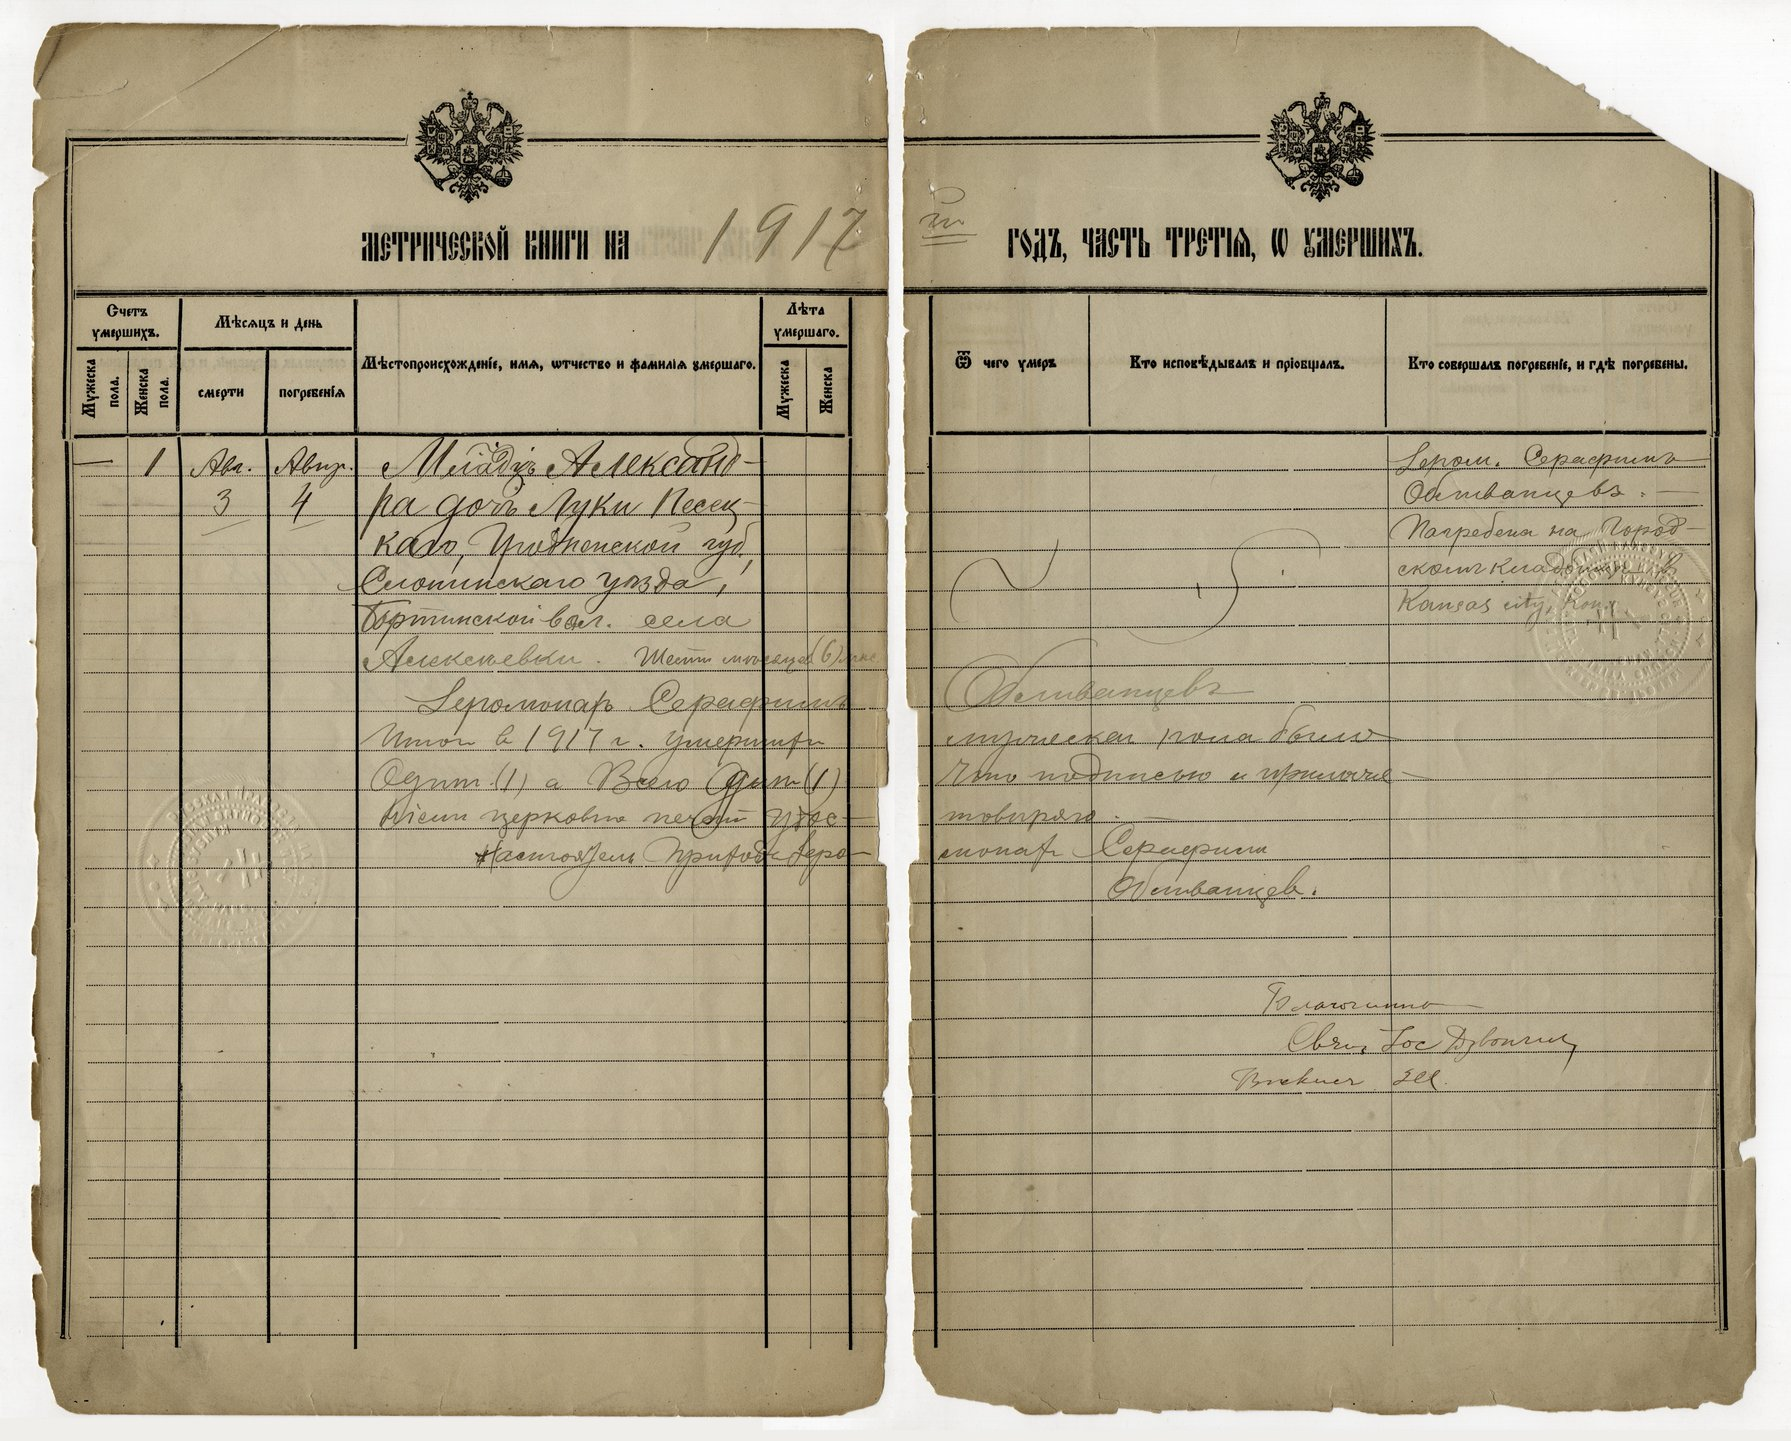 Birth, marriage and death register, Holy Trinity Russian Orthodox Church, Kansas City, Kansas - 1917 - 012 - Death